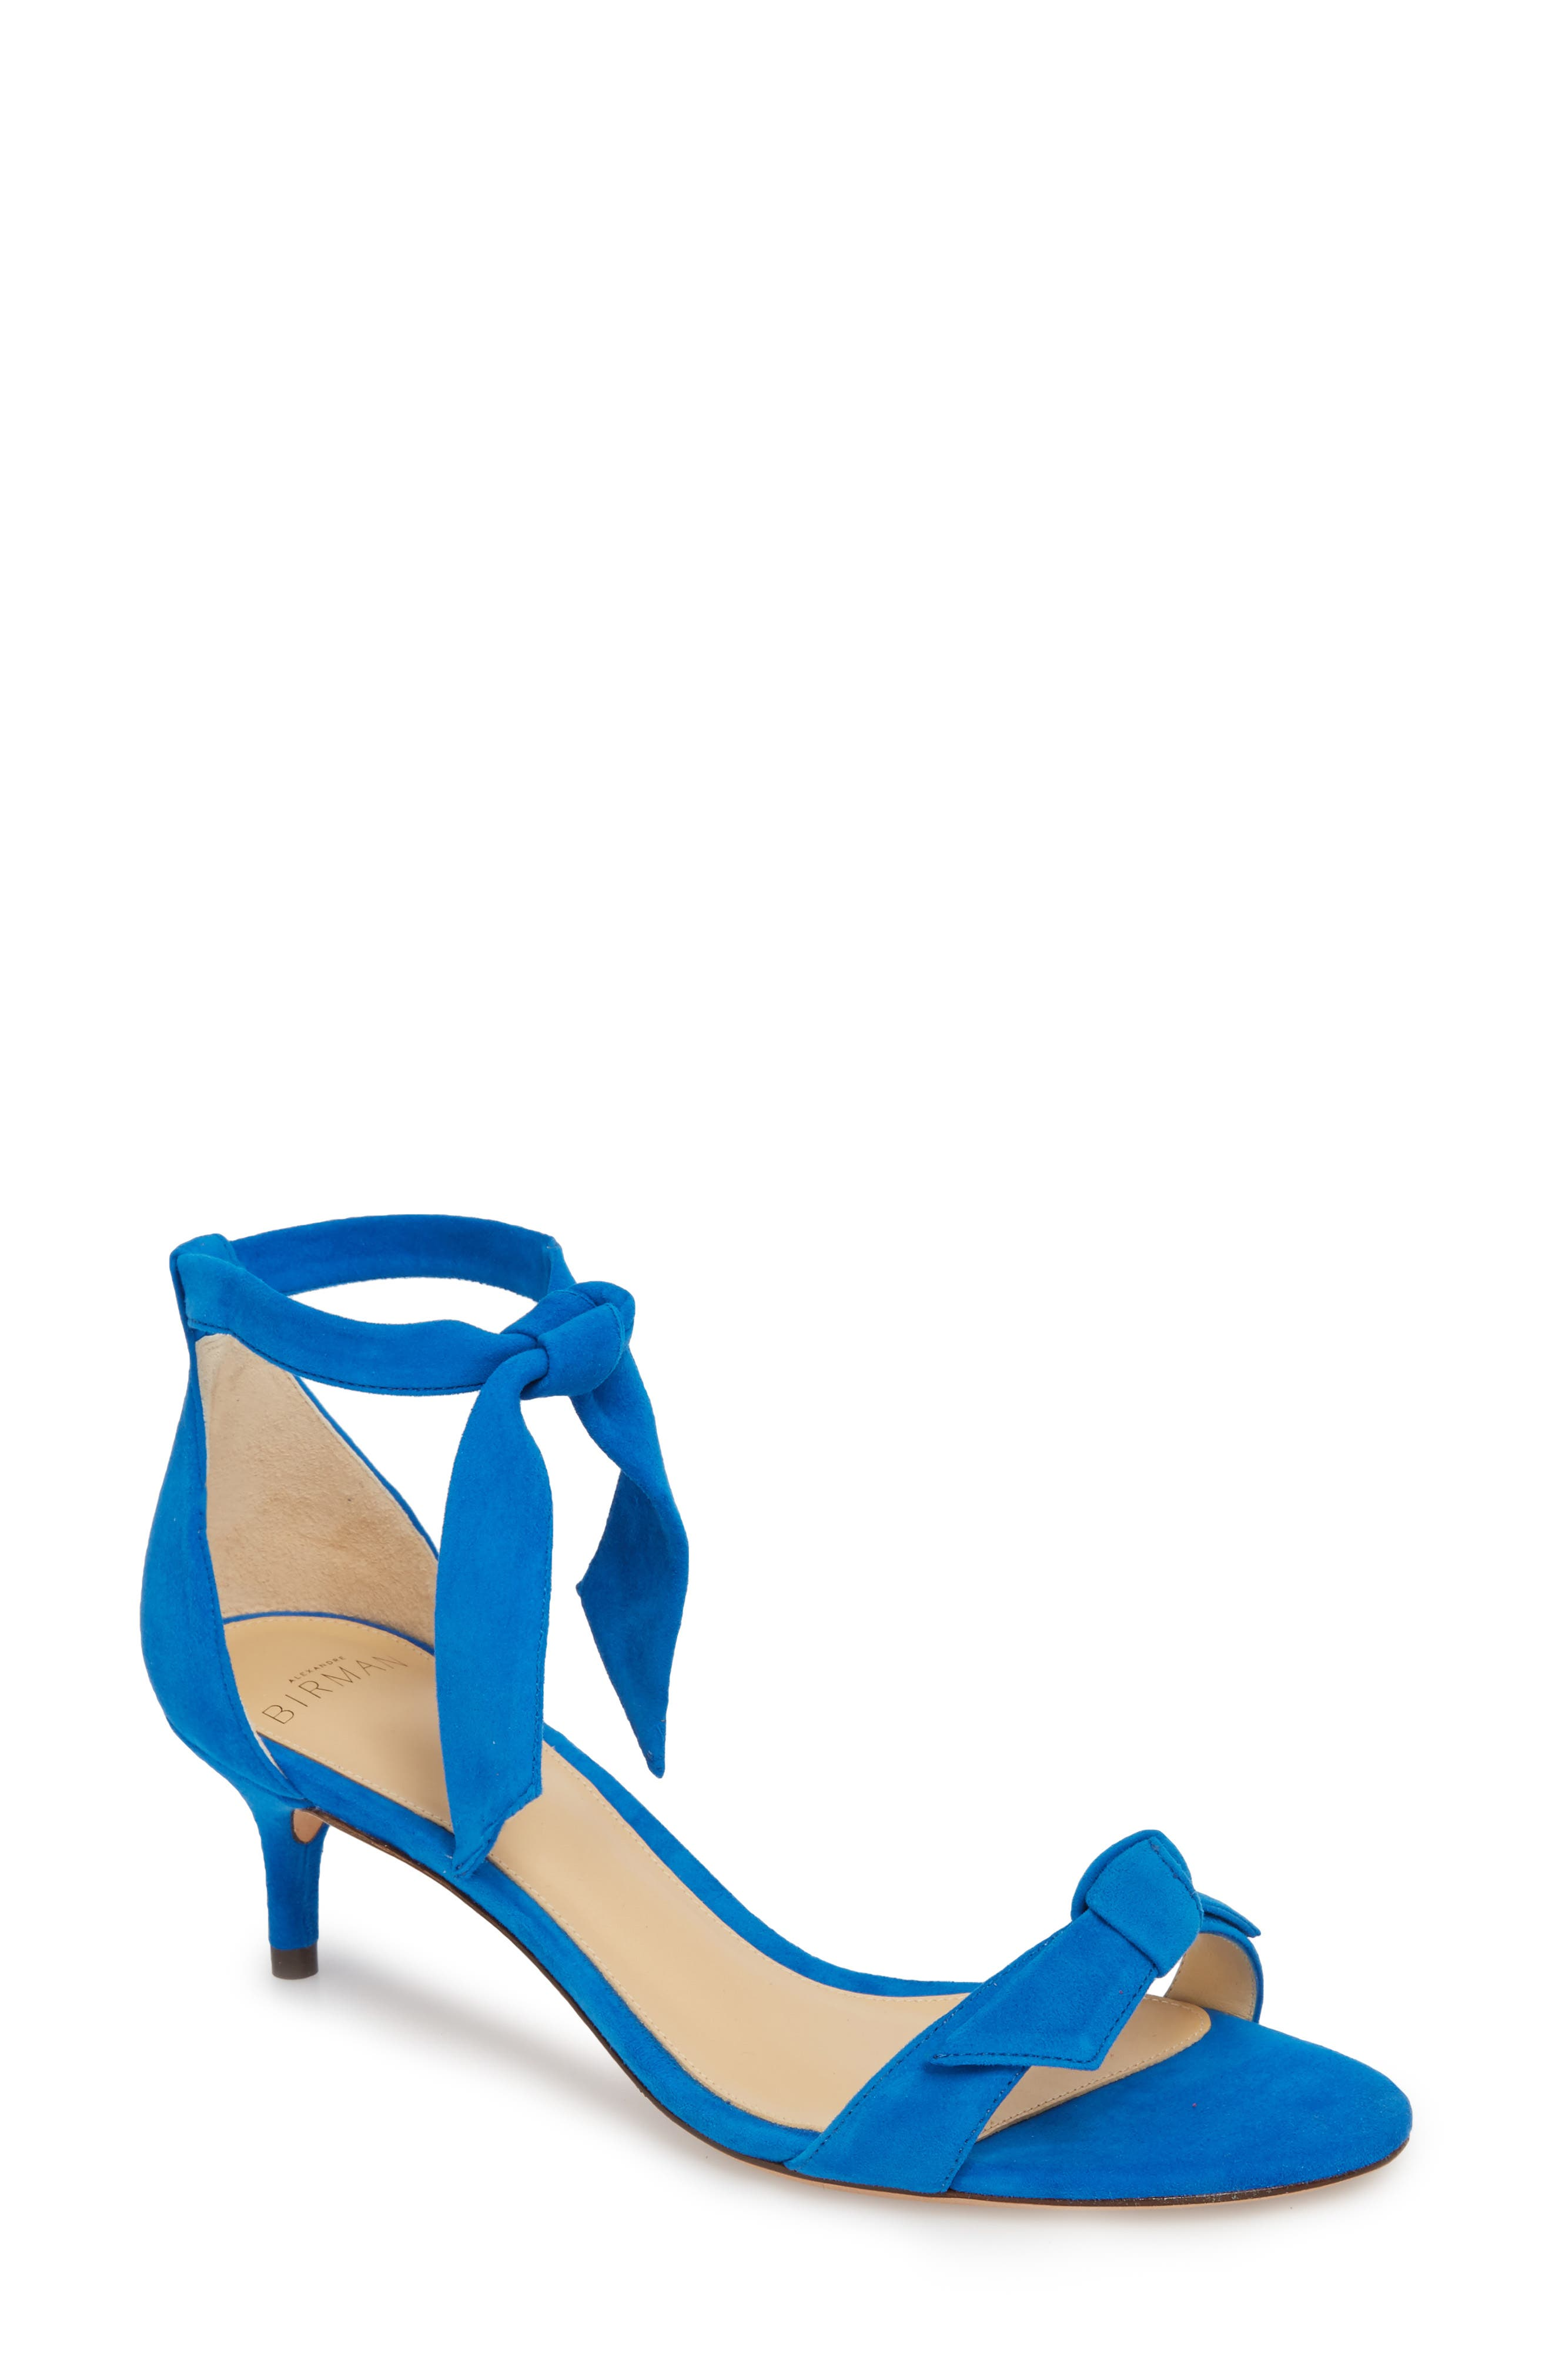 Clarita Knotted Sandal,                         Main,                         color, 400